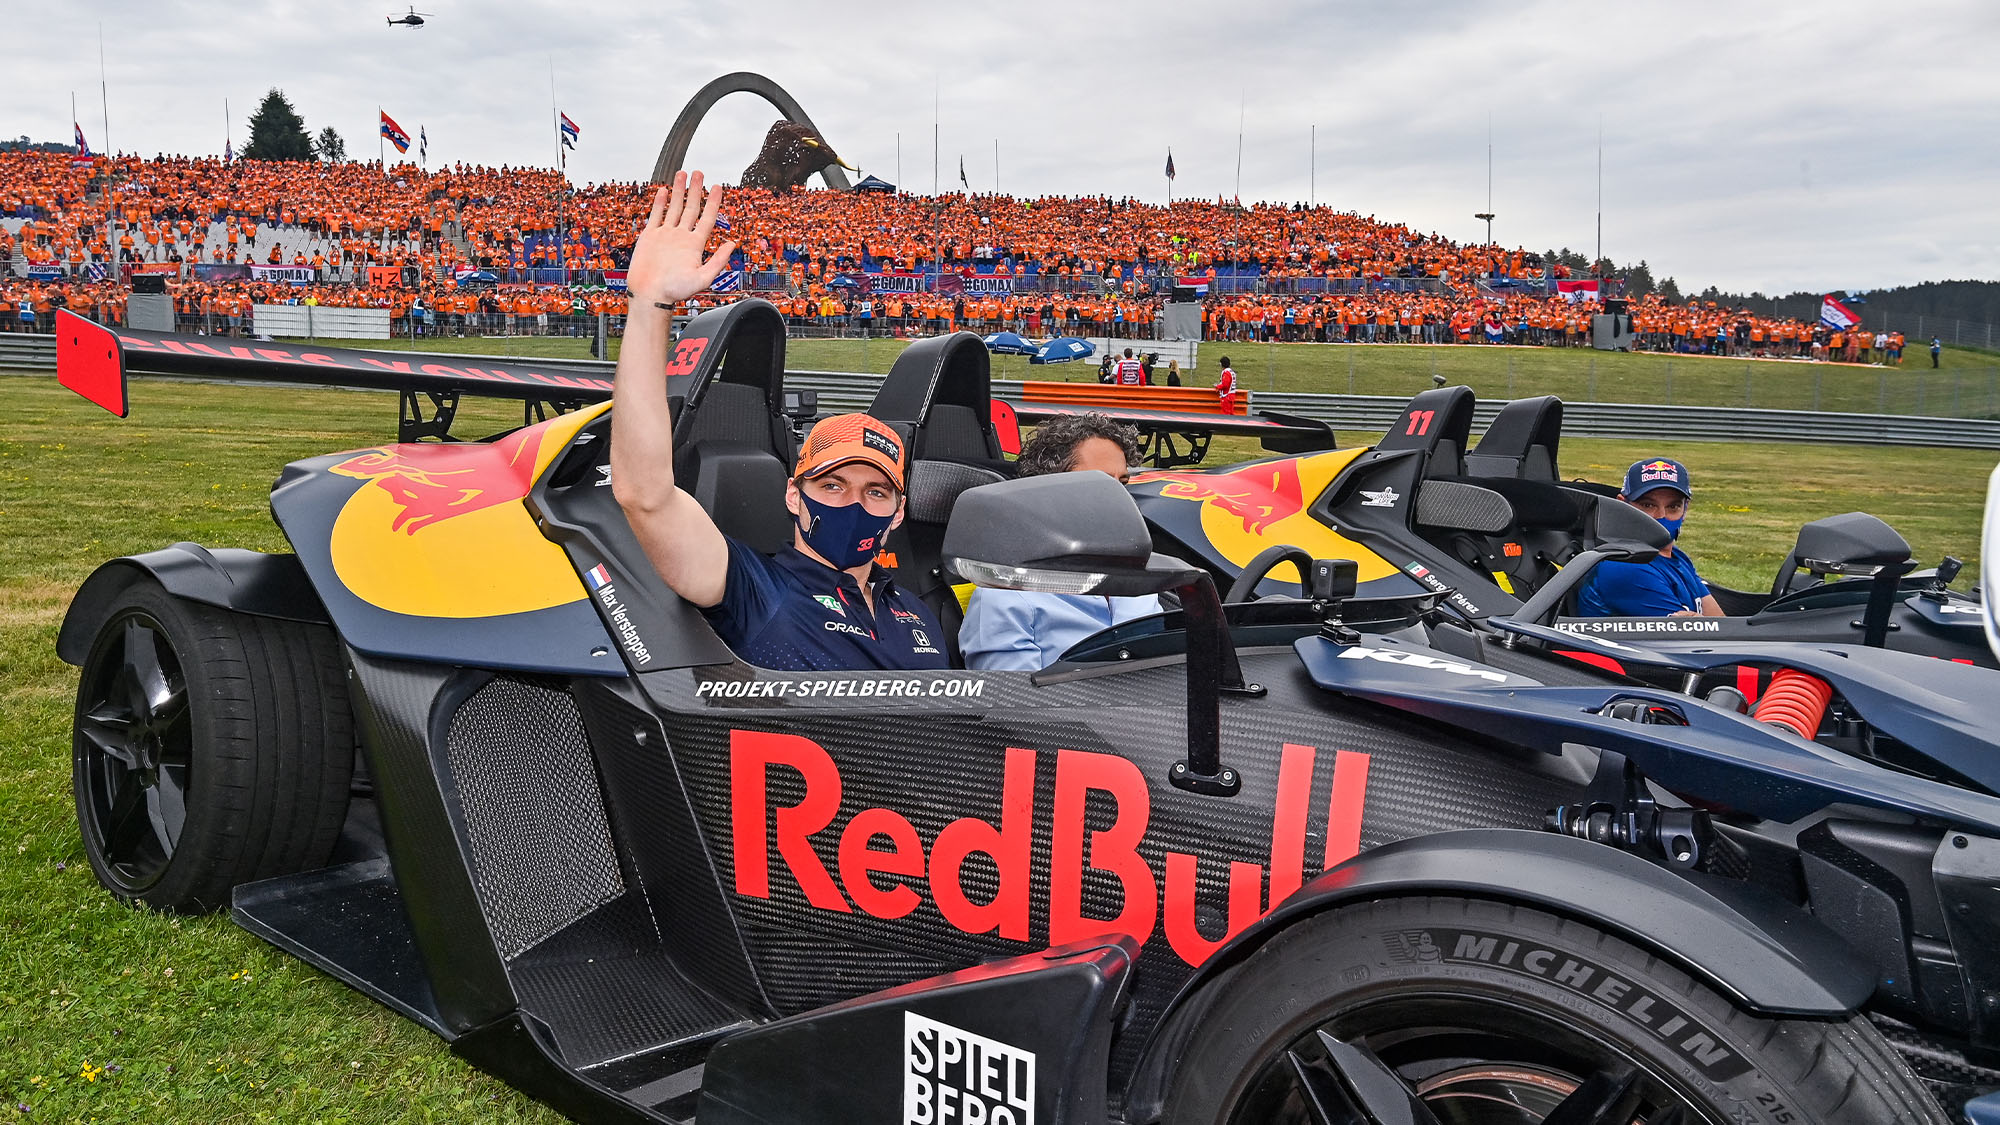 PEREZ Sergio (mex), Red Bull Racing Honda RB16B, and VERSTAPPEN Max (ned), Red Bull Racing Honda RB16B, portrait in front of their fans in the grandstands during the Formula 1 Grosser Preis Von Osterreich 2021, 2021 Austrian Grand Prix, 9th round of the 2021 FIA Formula One World Championship from July 2 to 4, 2021 on the Red Bull Ring, in Spielberg, Austria - Photo DPPI